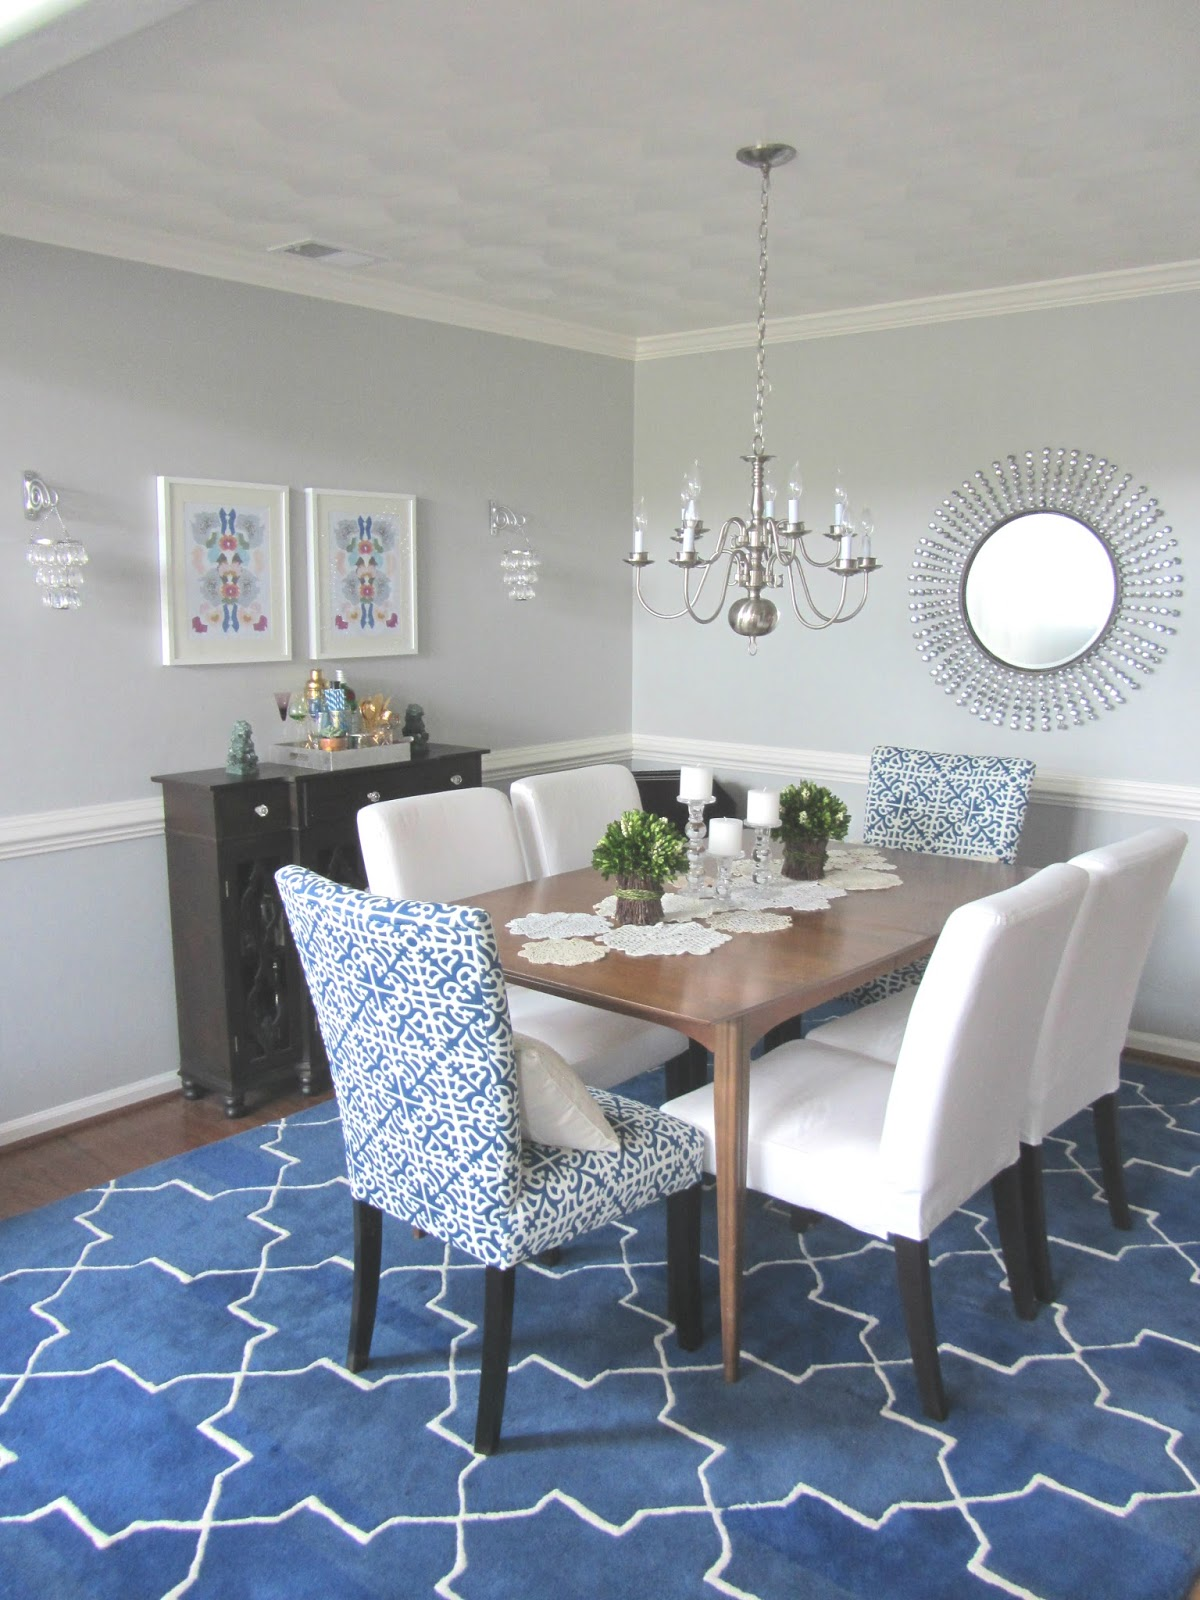 That Blue Rug Does Wonders For The Dining Room; Completely Opening It Up,  Drawing The Eye To The Pattern And Providing A ...